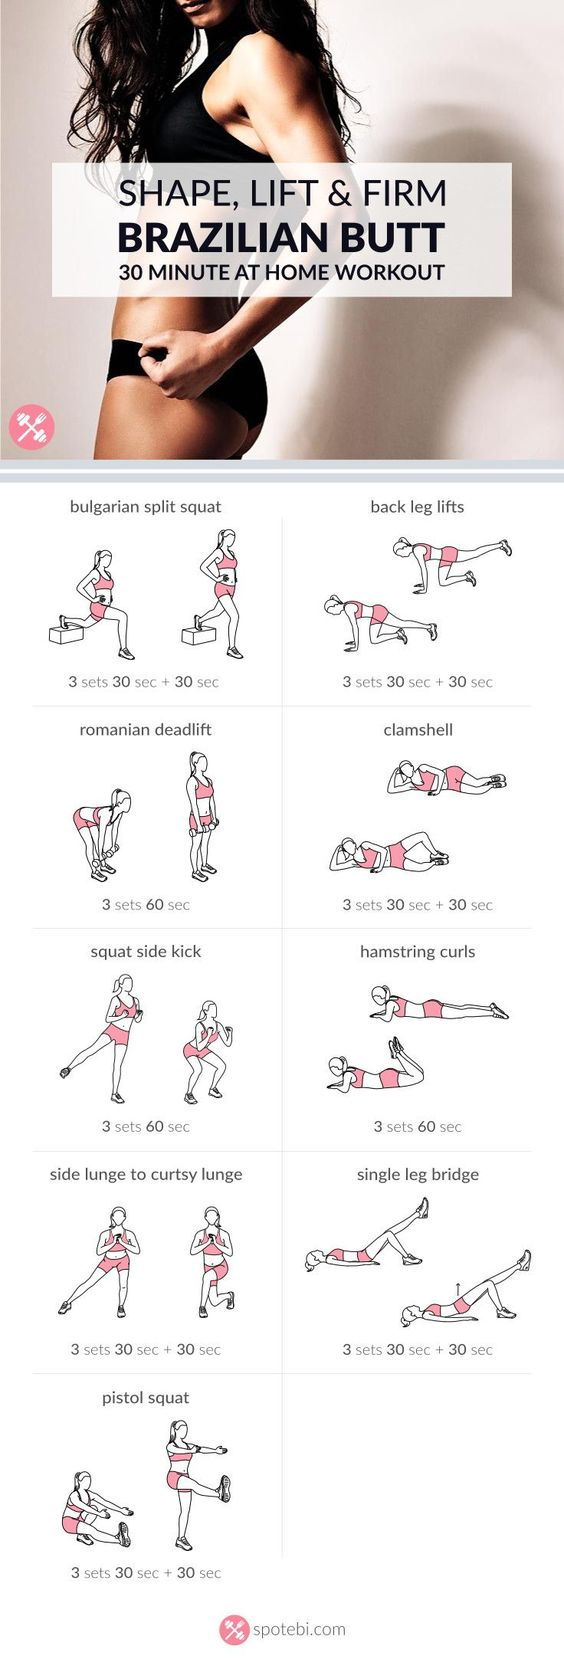 Want to know the secret to a perfect booty? Try this 30 minute sculpting and lifting Brazilian butt workout. Shape and firm your glutes and thighs fast! http://www.spotebi.com/workout-routines/shape-lift-firm-brazilian-butt-workout/: